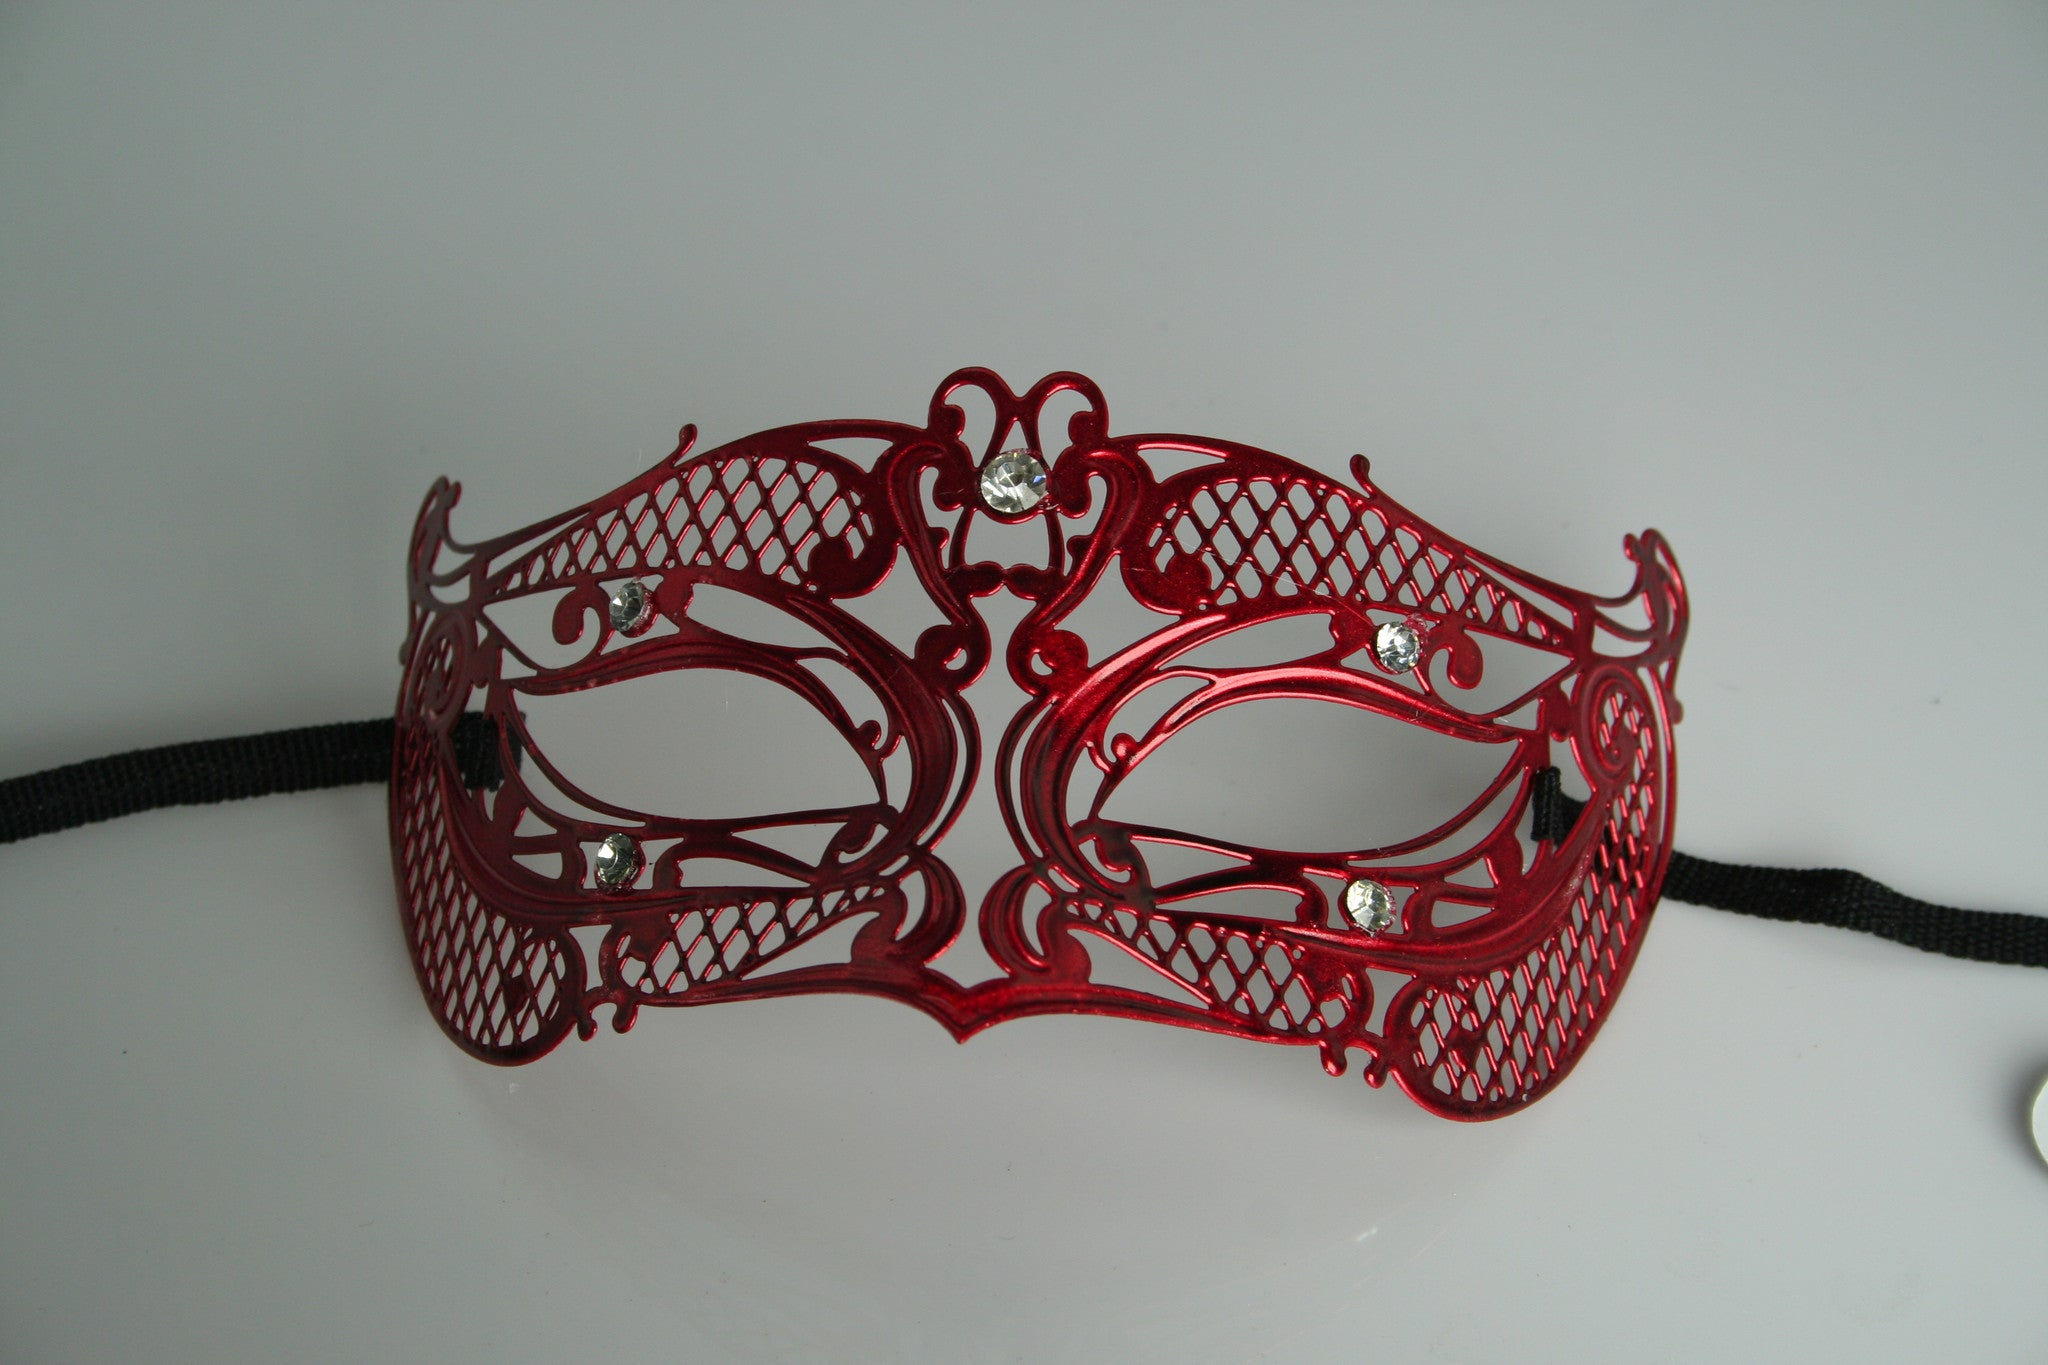 Red Mask with Diamantes - MK106 CLEARANCE HALF PRICE OFF ORIGINAL PRICE BELOW